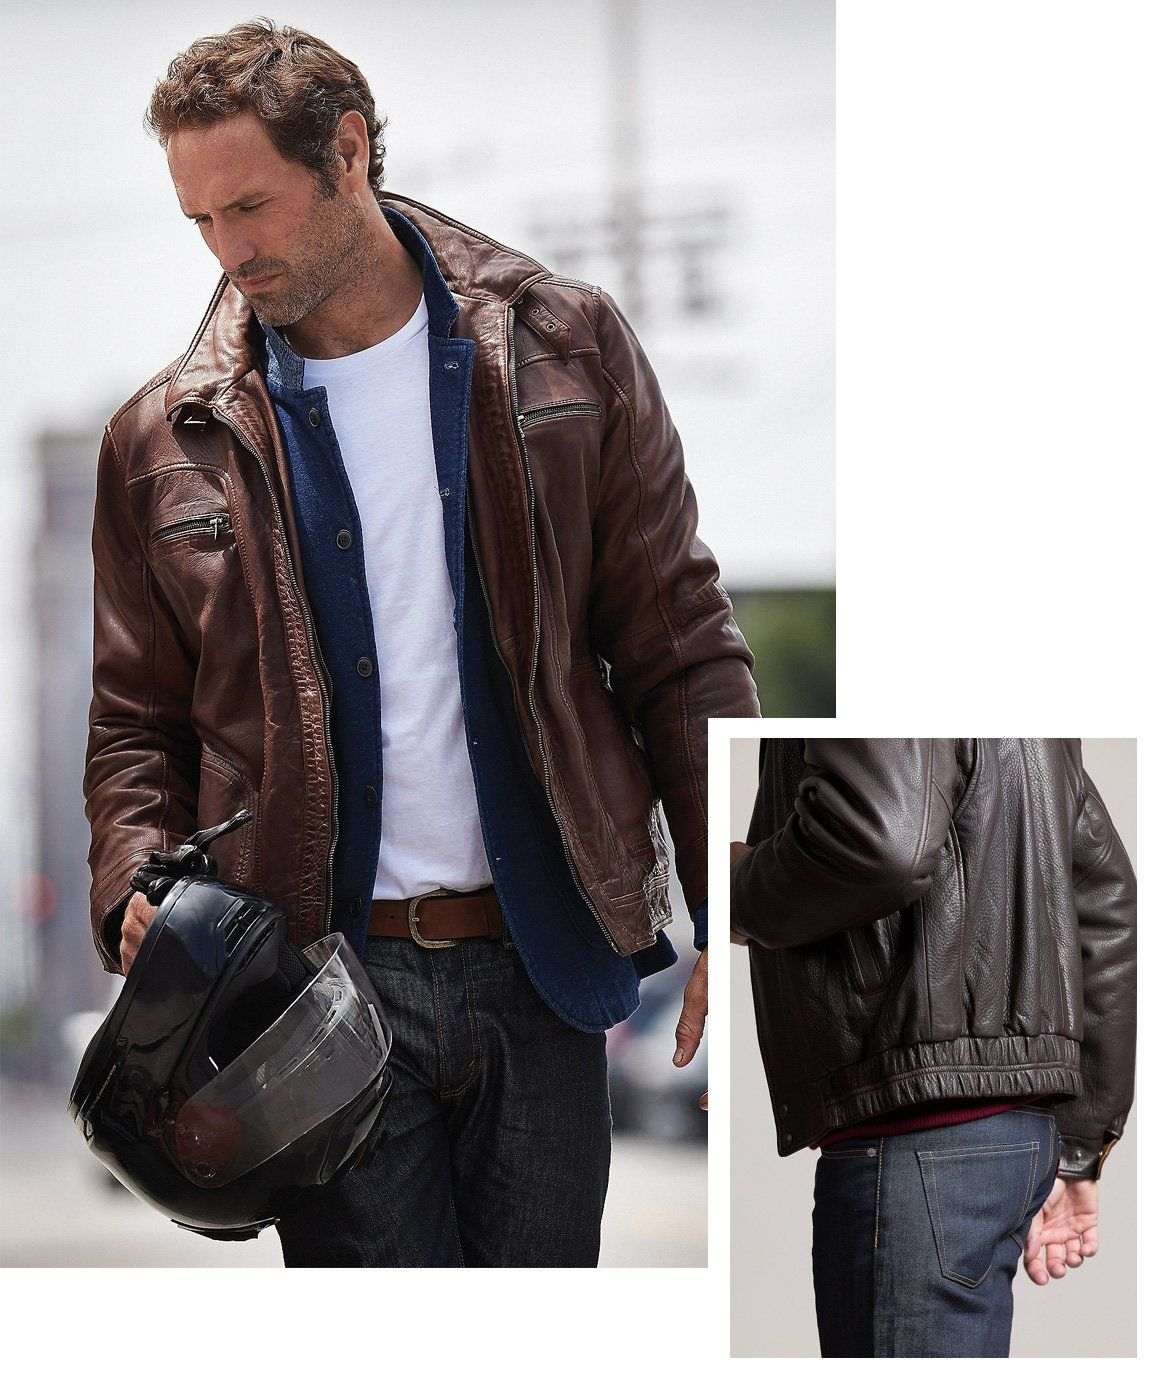 What Men's Leather Jacket to Buy 6 Classic Styles